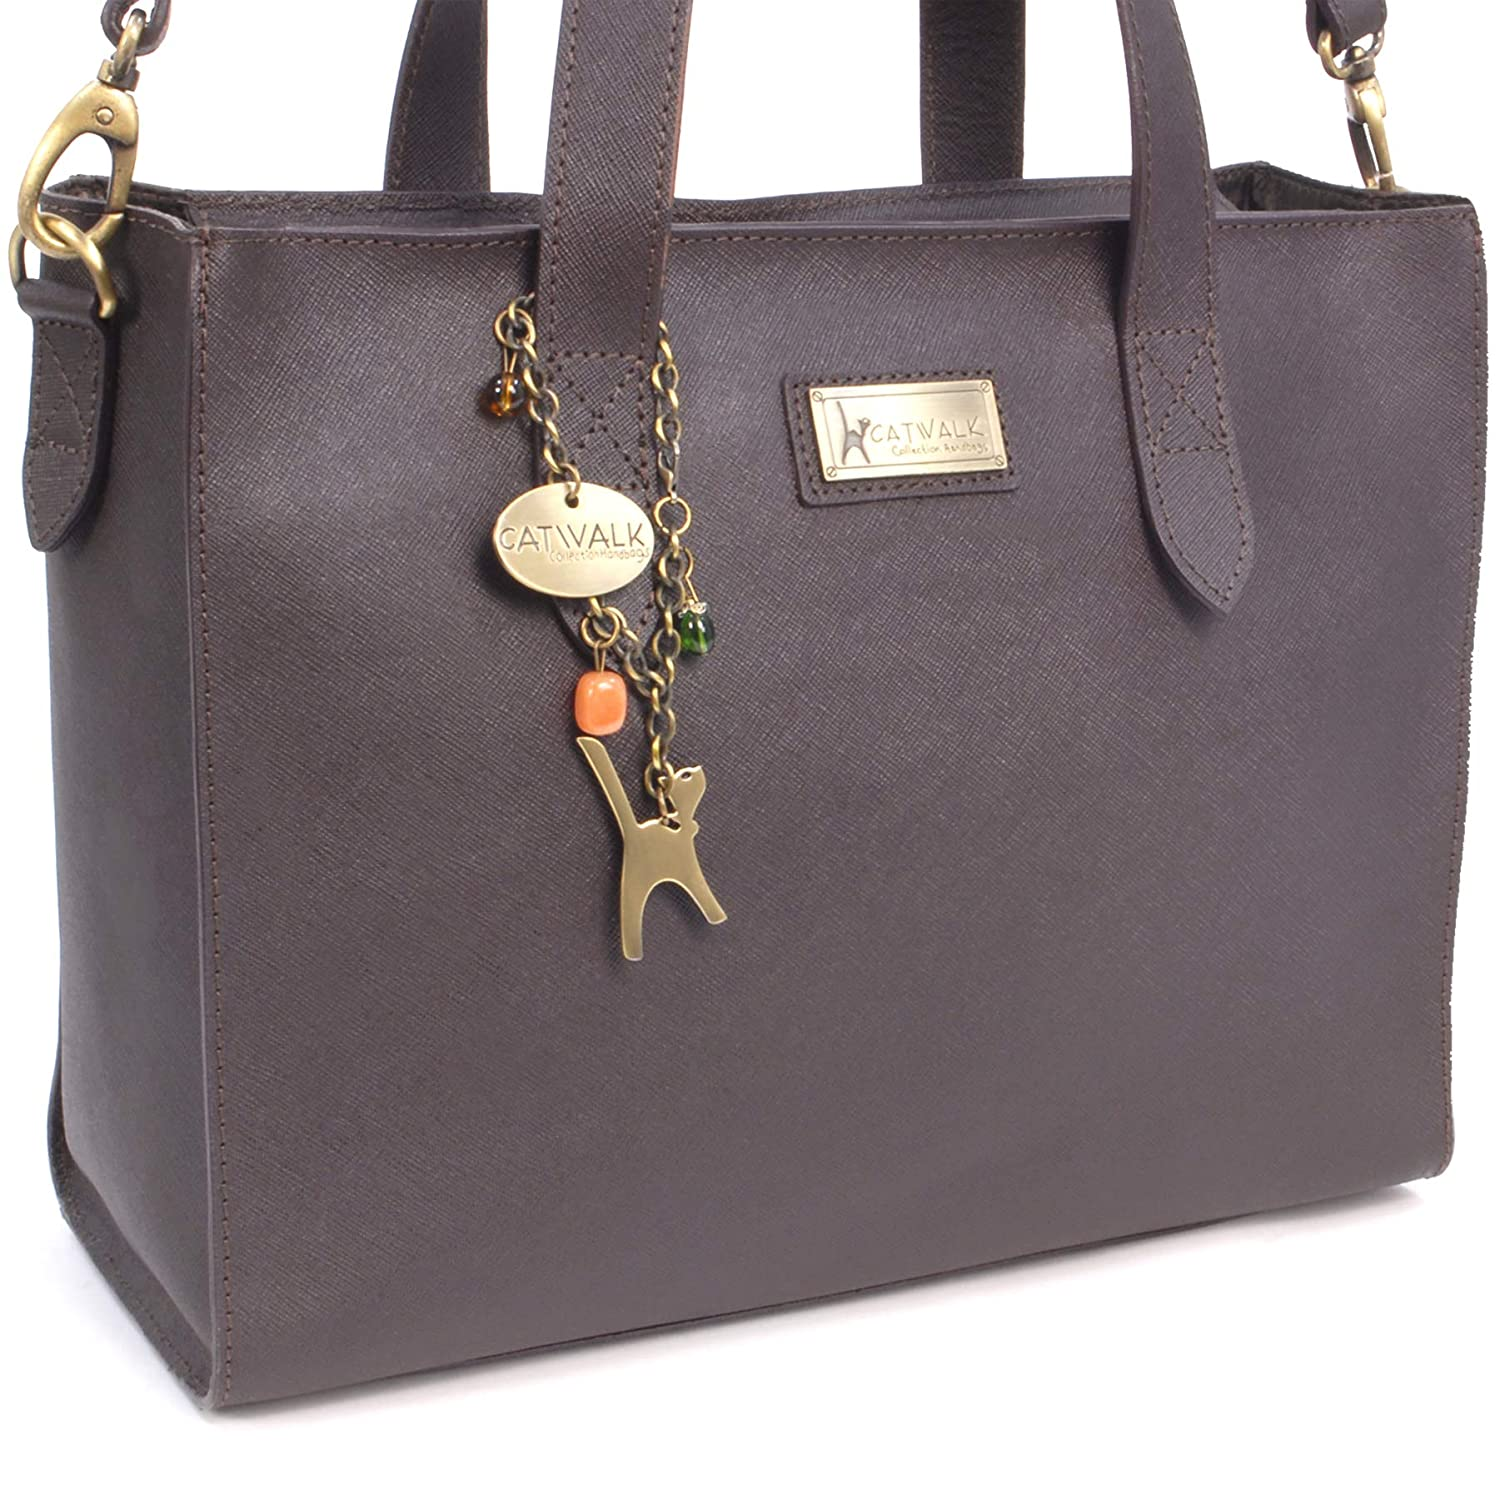 b916403fed71 Catwalk Collection Handbags - Women's Large Leather Tote/Shopper - Shoulder  Bag/Cross Body With Extra Detachable Adjustable Strap - Water Resistant ...